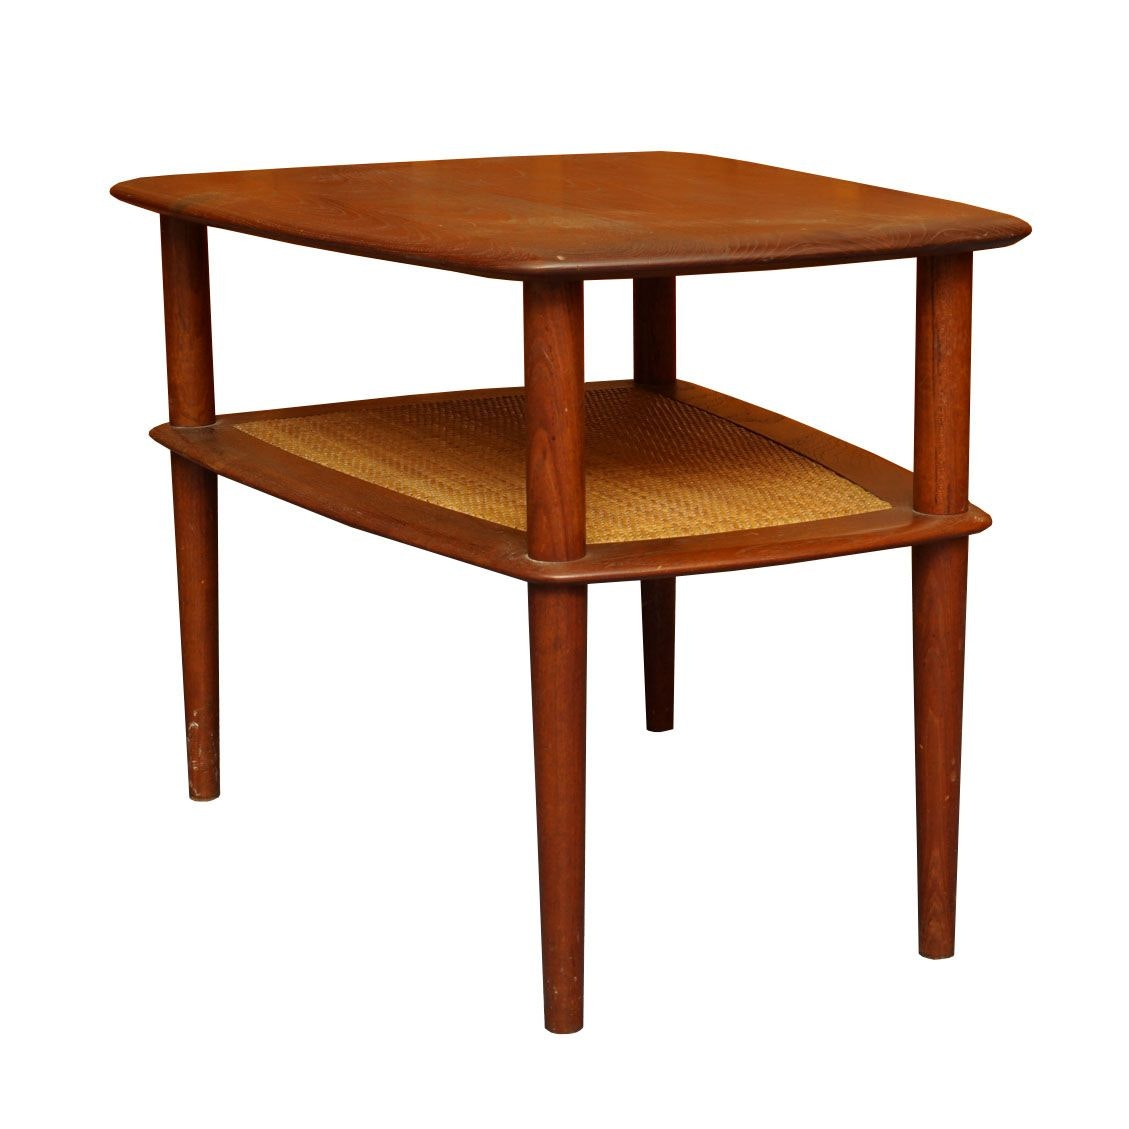 Attrayant Danish Modern Side Table By John Stuart Inc. ...